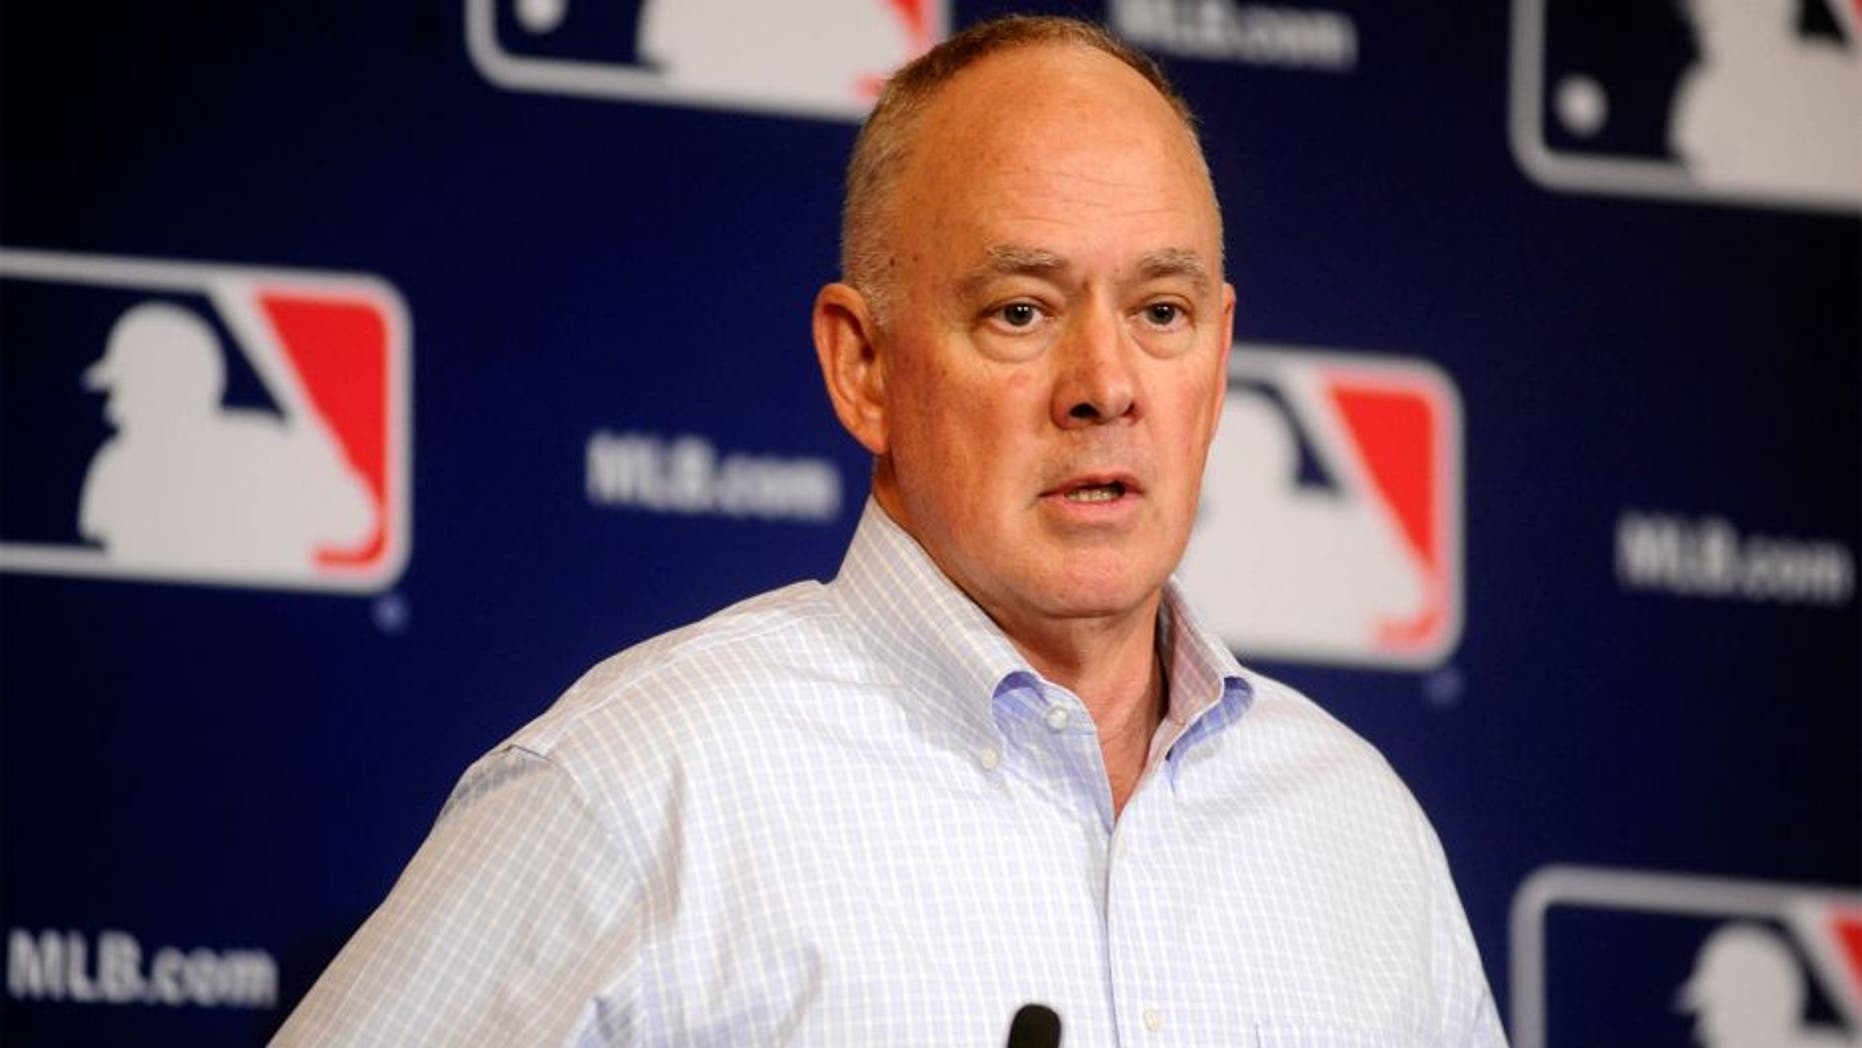 Dec 11, 2013; Orlando, FL, USA; New York Mets general manager Sandy Alderson announces that the MLB rules committee approved a change eliminating collisions at home plate during the MLB Winter Meetings at the Walt Disney World Swan and Dolphin Resort. The proposed rule change goes to the owners and the MLB Players association for approval. Mandatory Credit: David Manning-USA TODAY Sports